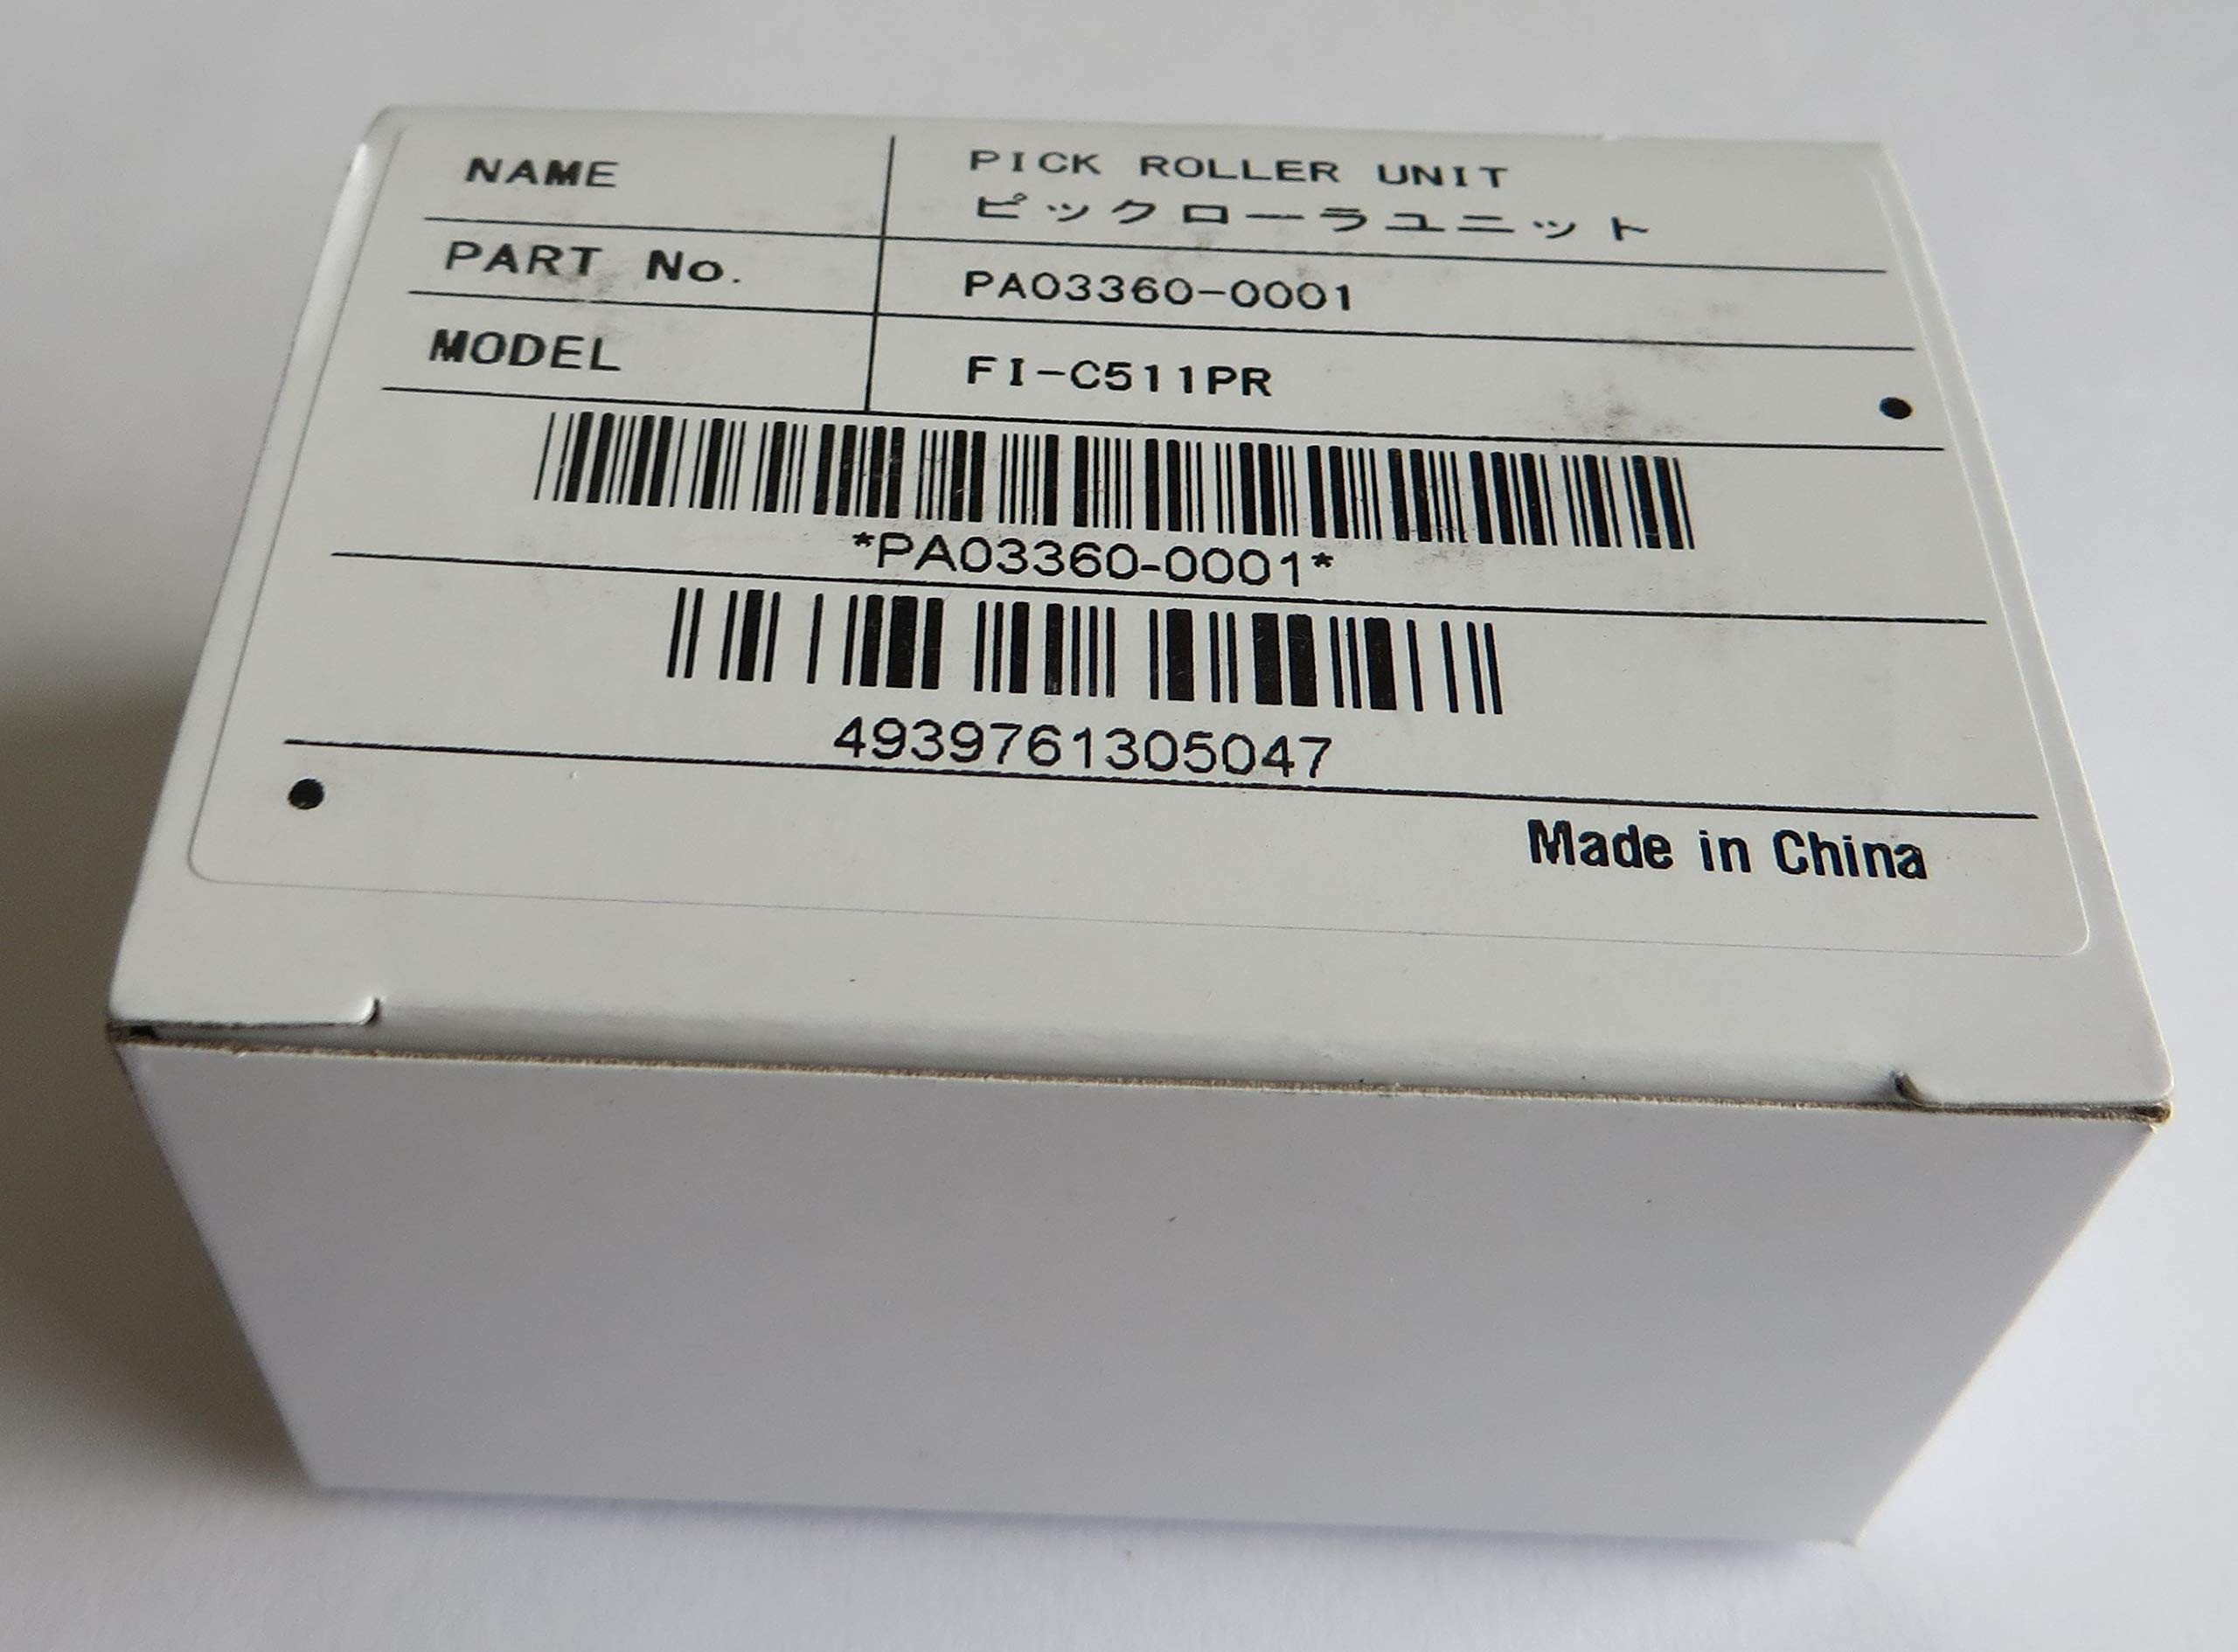 Pick Roller FIC511PR/PA03360-0001 for Scansnap FI-5110EOX Or 5110C